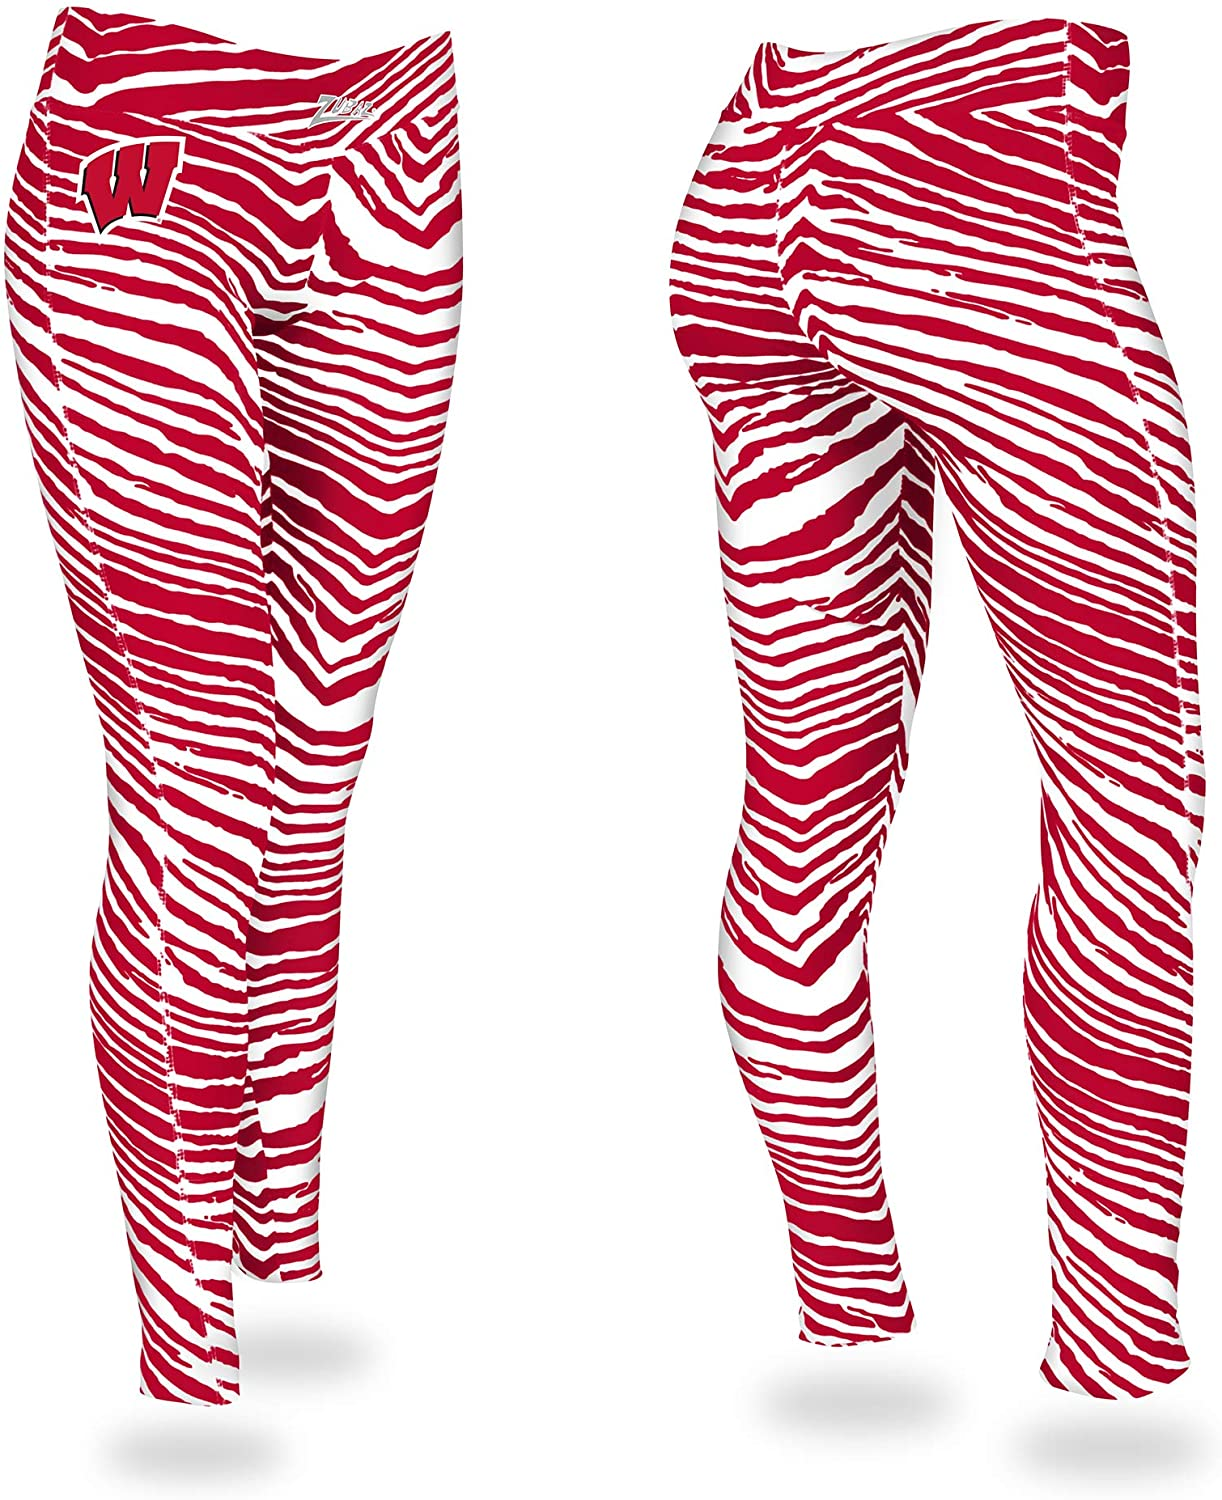 NCAA Alabama Crimson Tide Women's Zebra Legging